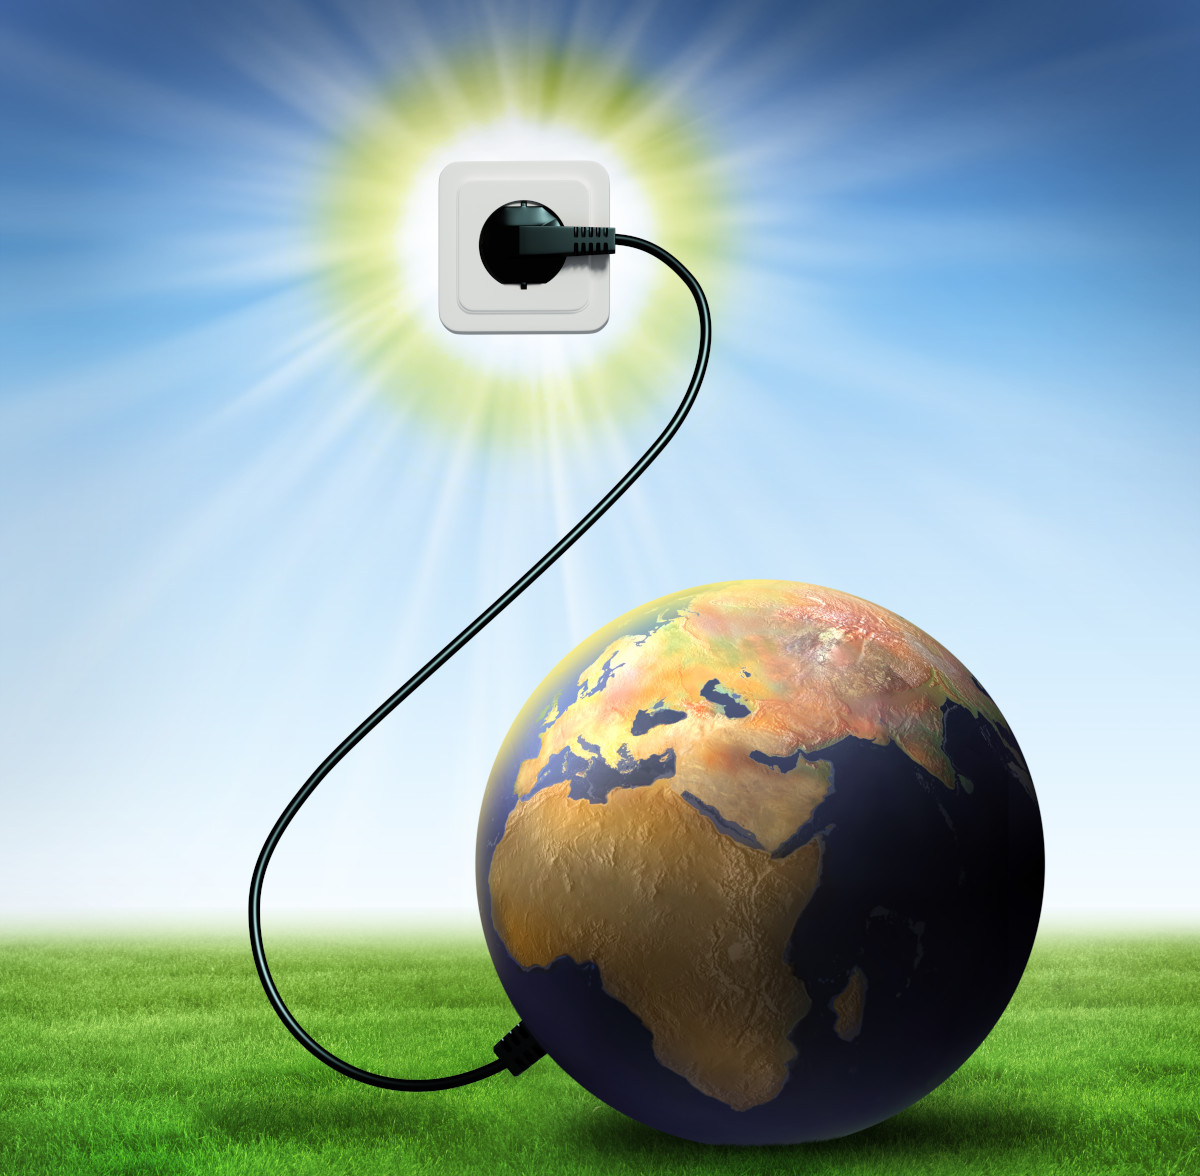 an image of the planet connected via a lead to a plug socket